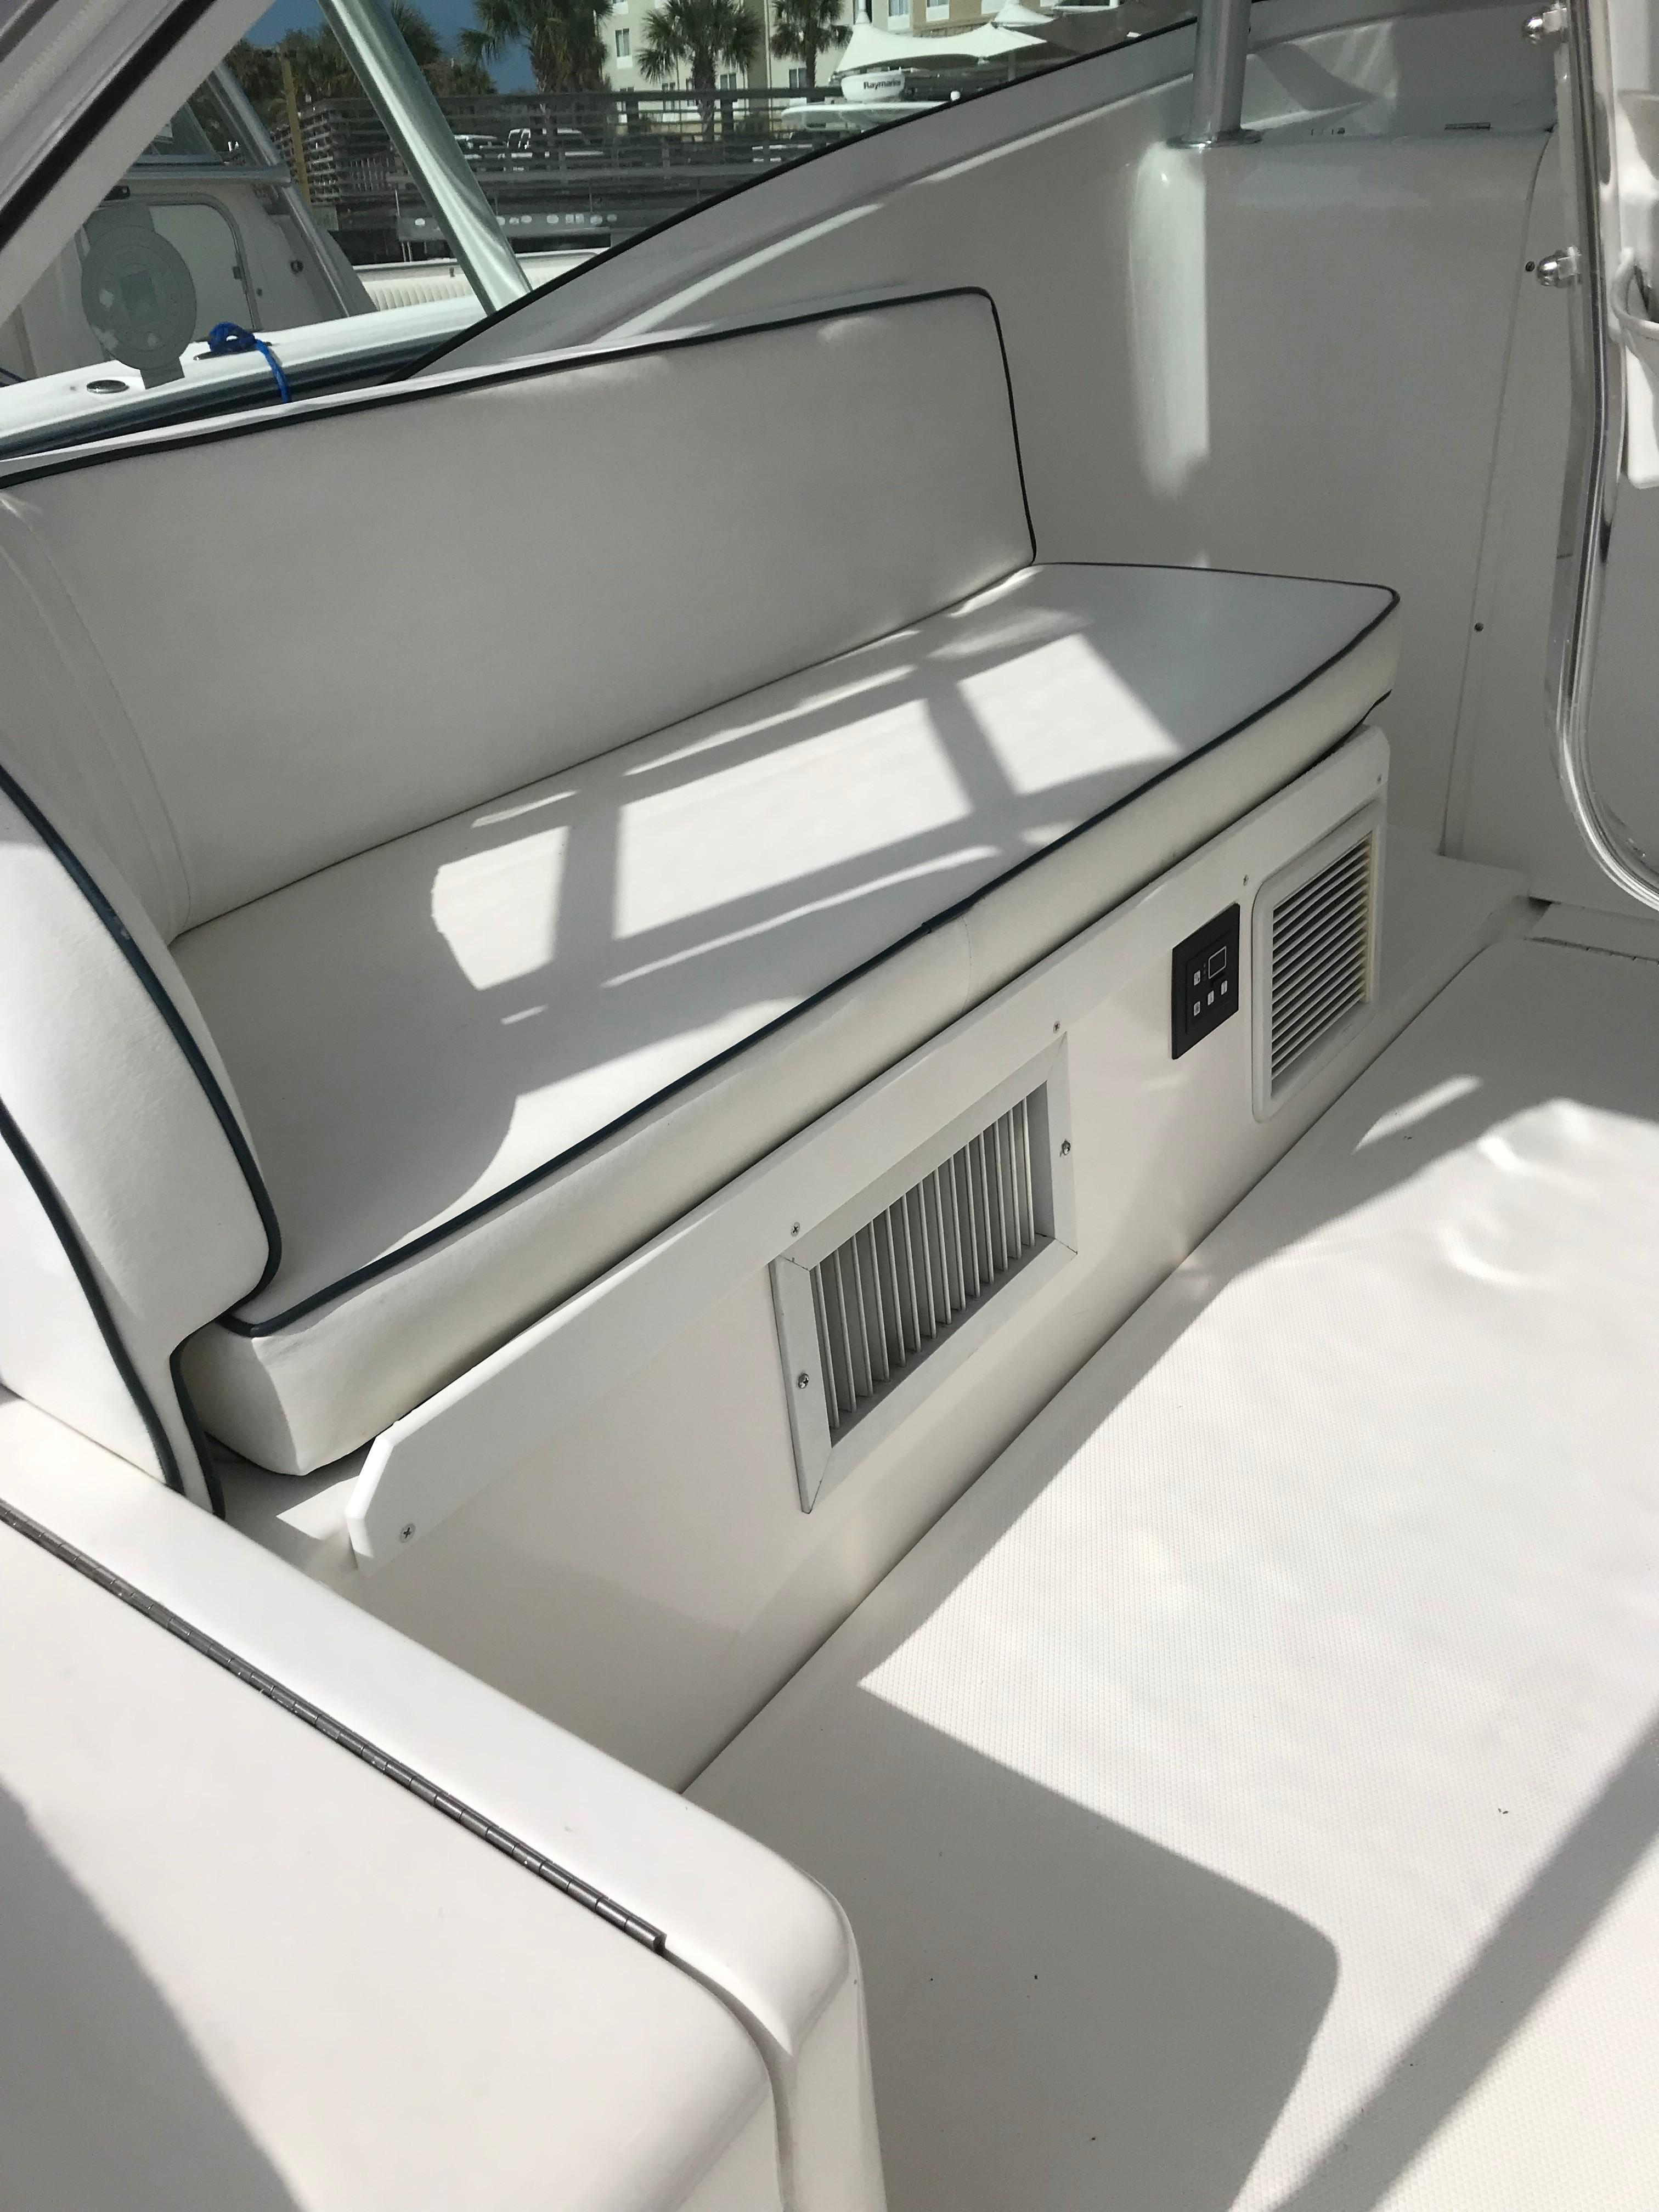 Luhrs 32 Express - Bridge Deck seating